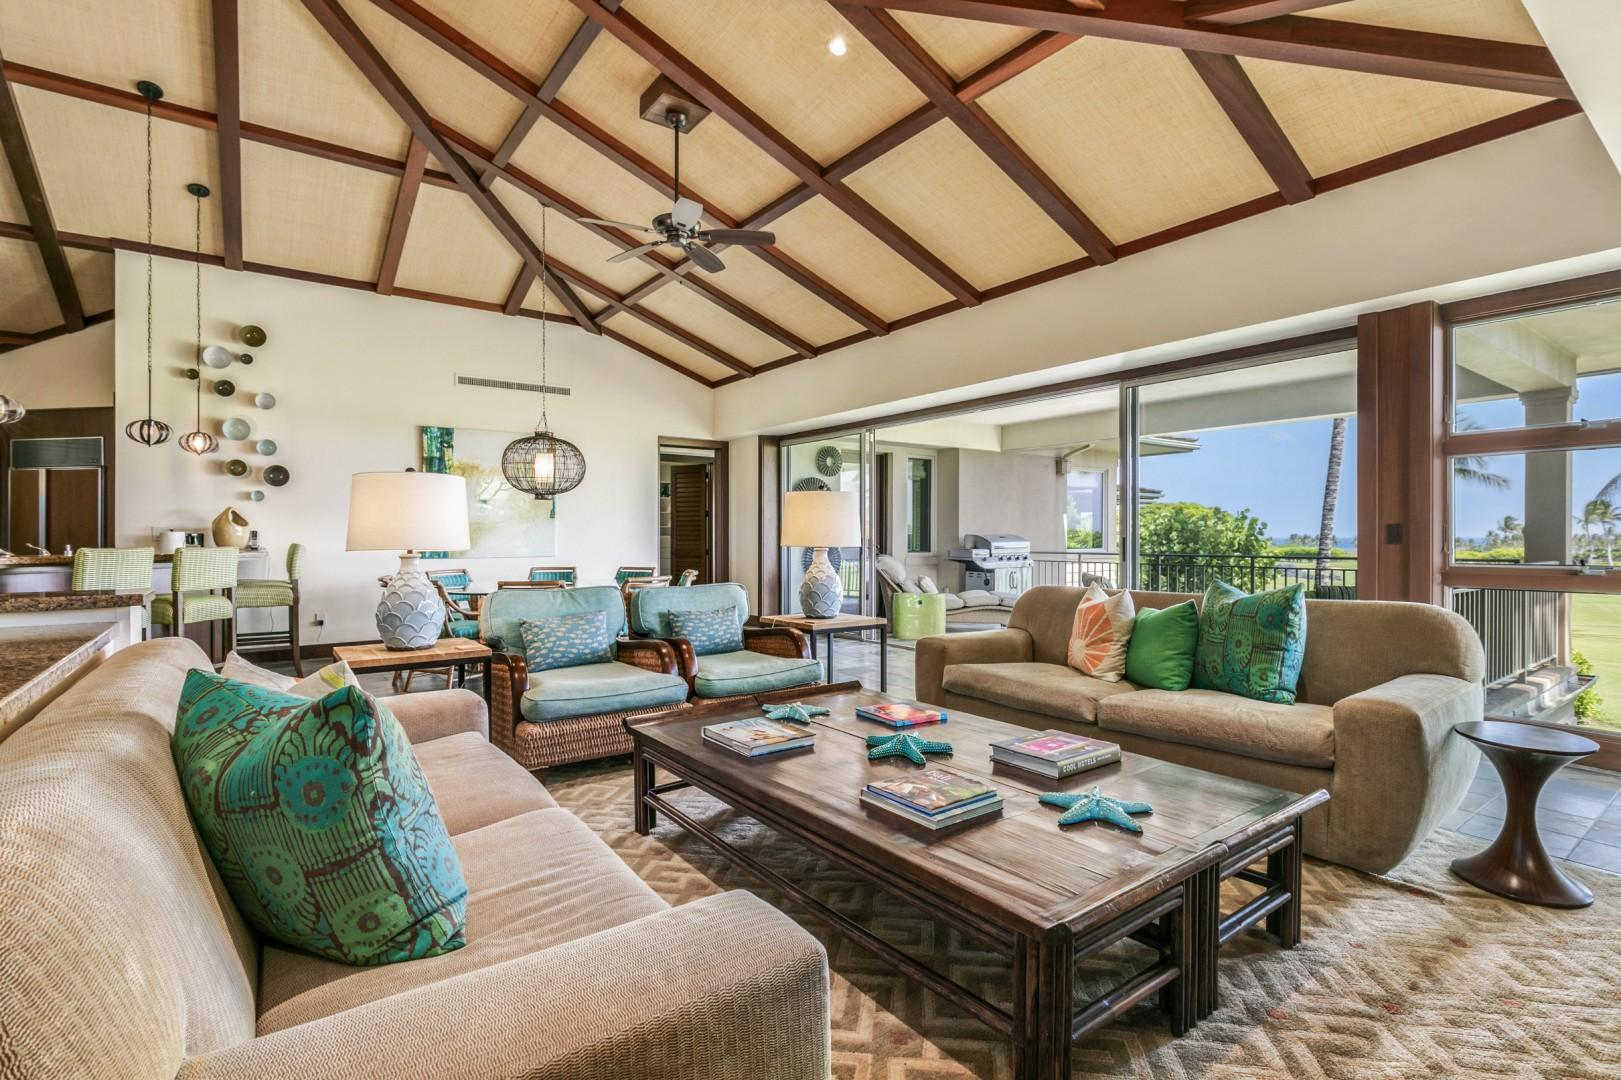 Expansive Great Room with Soaring Vaulted Ceilings, Professionally Designed by Erik Henderson.